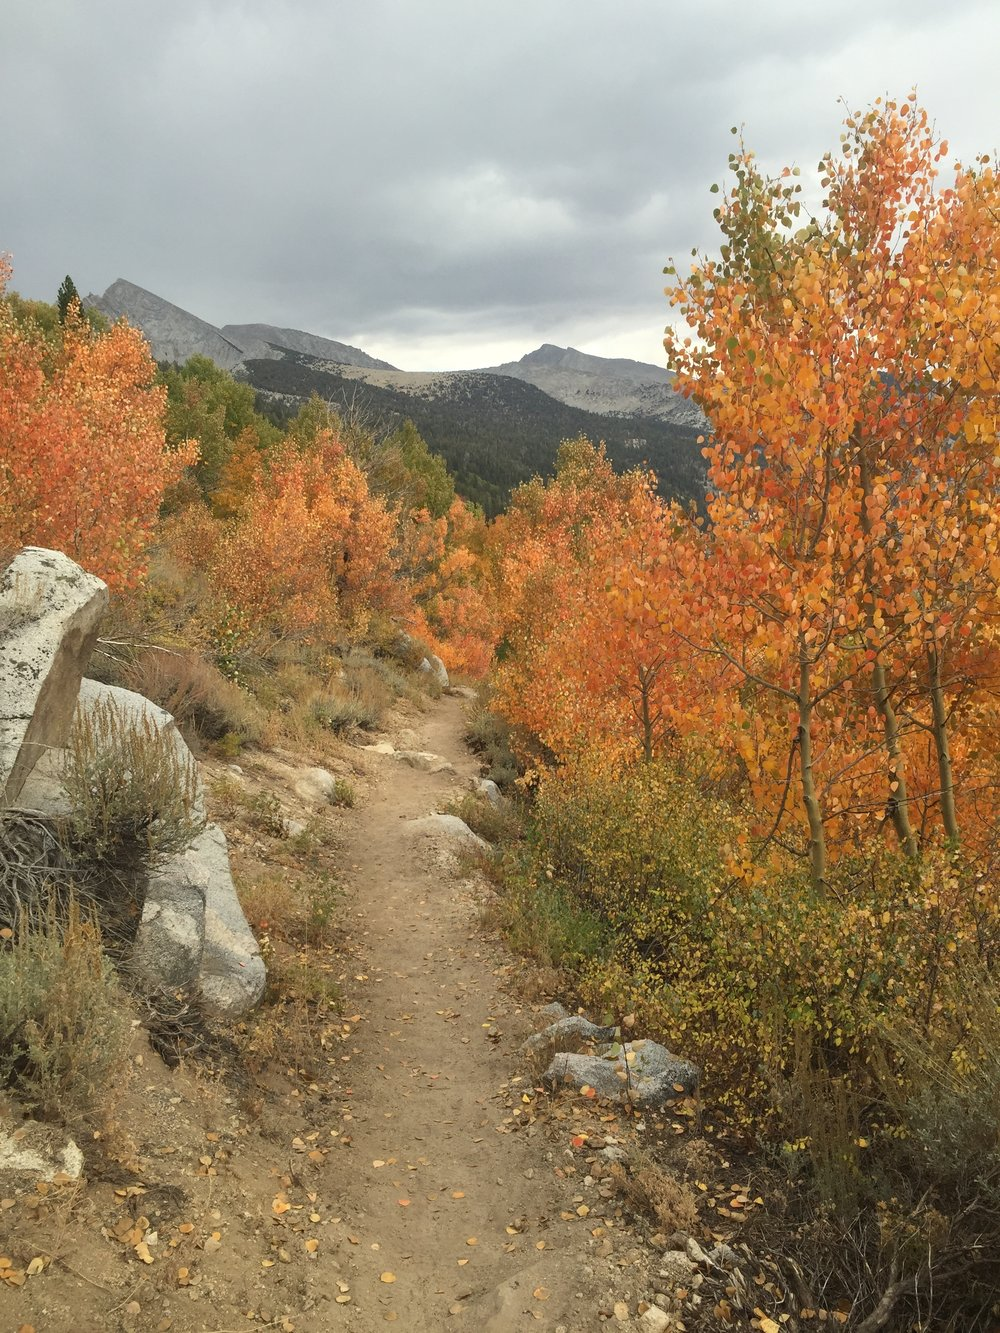 As we descend through glorious fall colors to the North Fork of Mono Creek, the sky has turned positively ominous